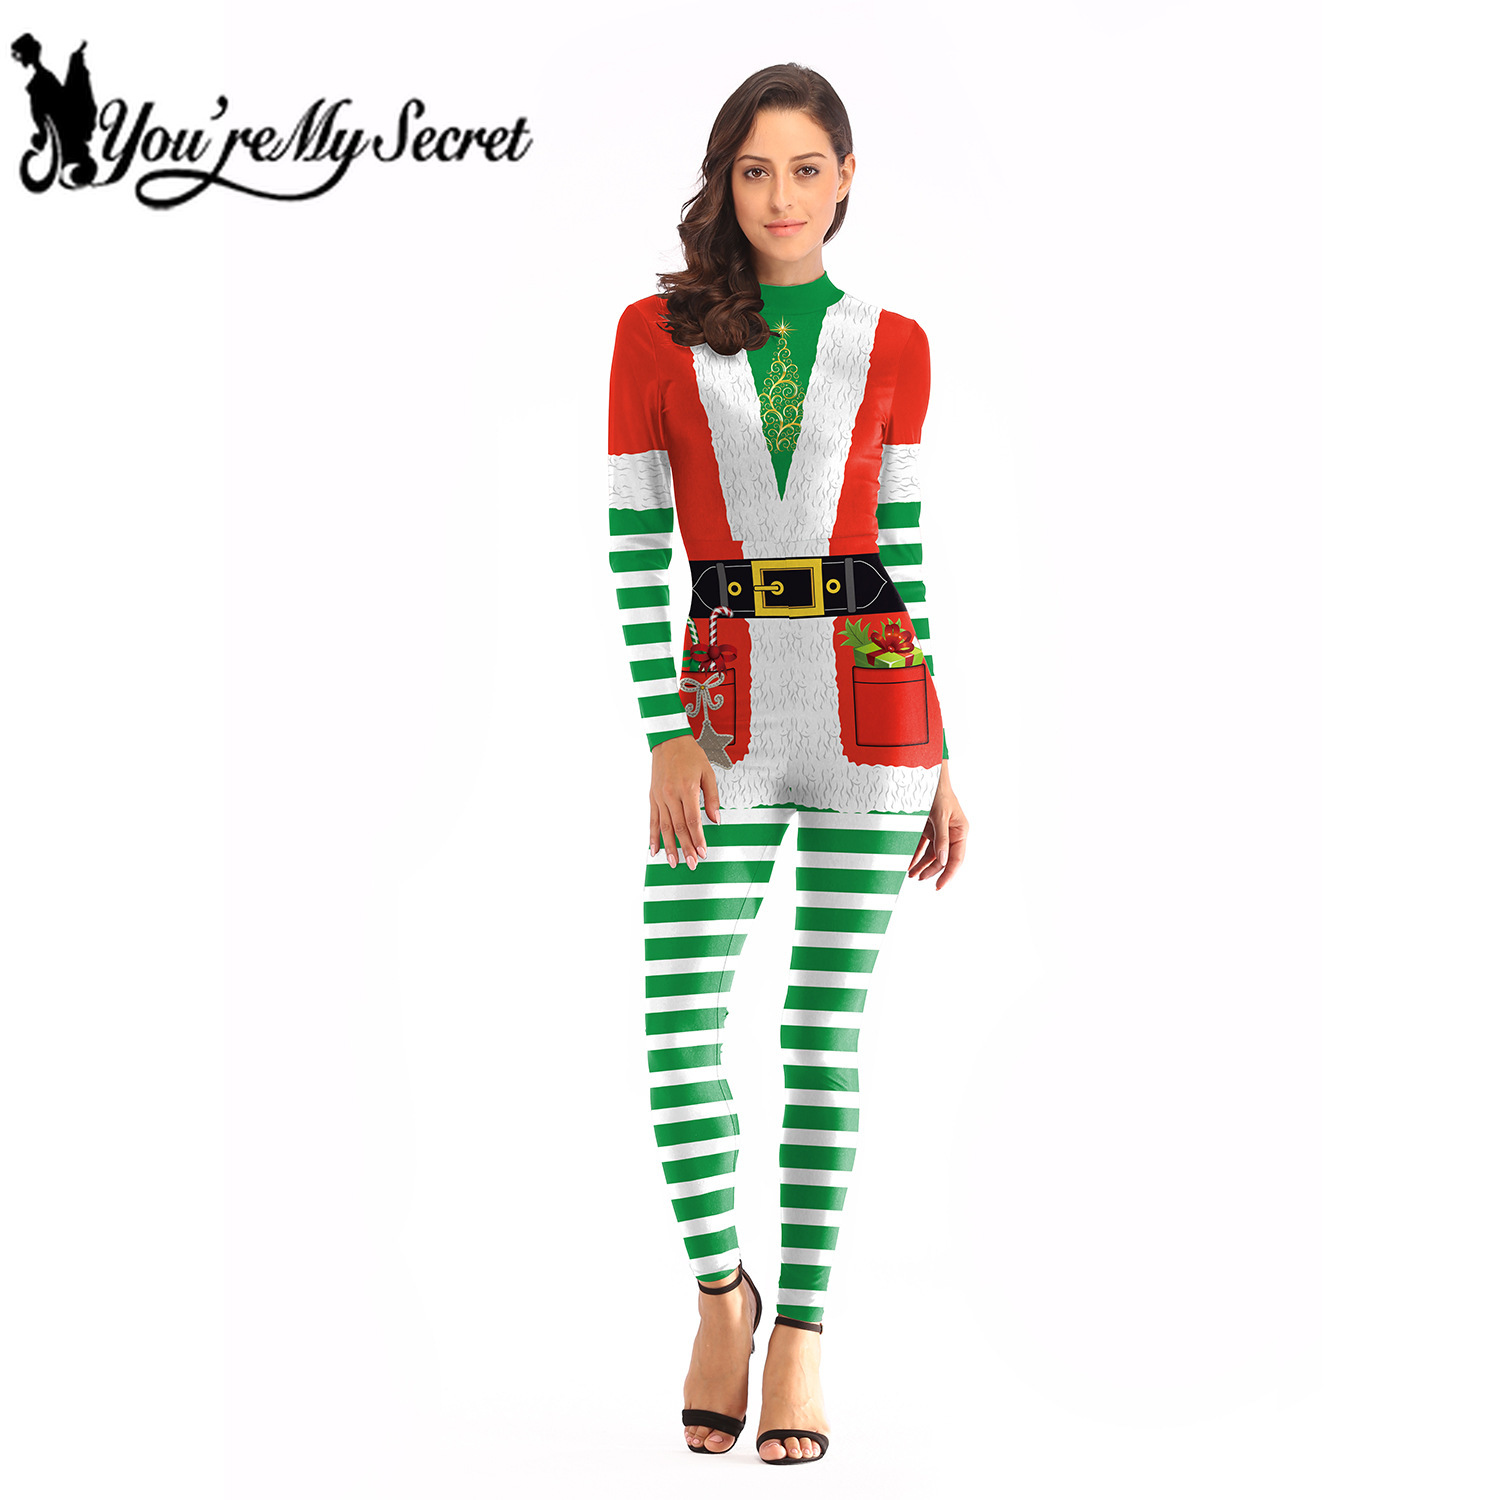 [You're My Secret] 2019 New Arrival Christmas Festival Bodysuit Women's Rompers Anime Cosplay Adult Holiday Striped Jumpsuit